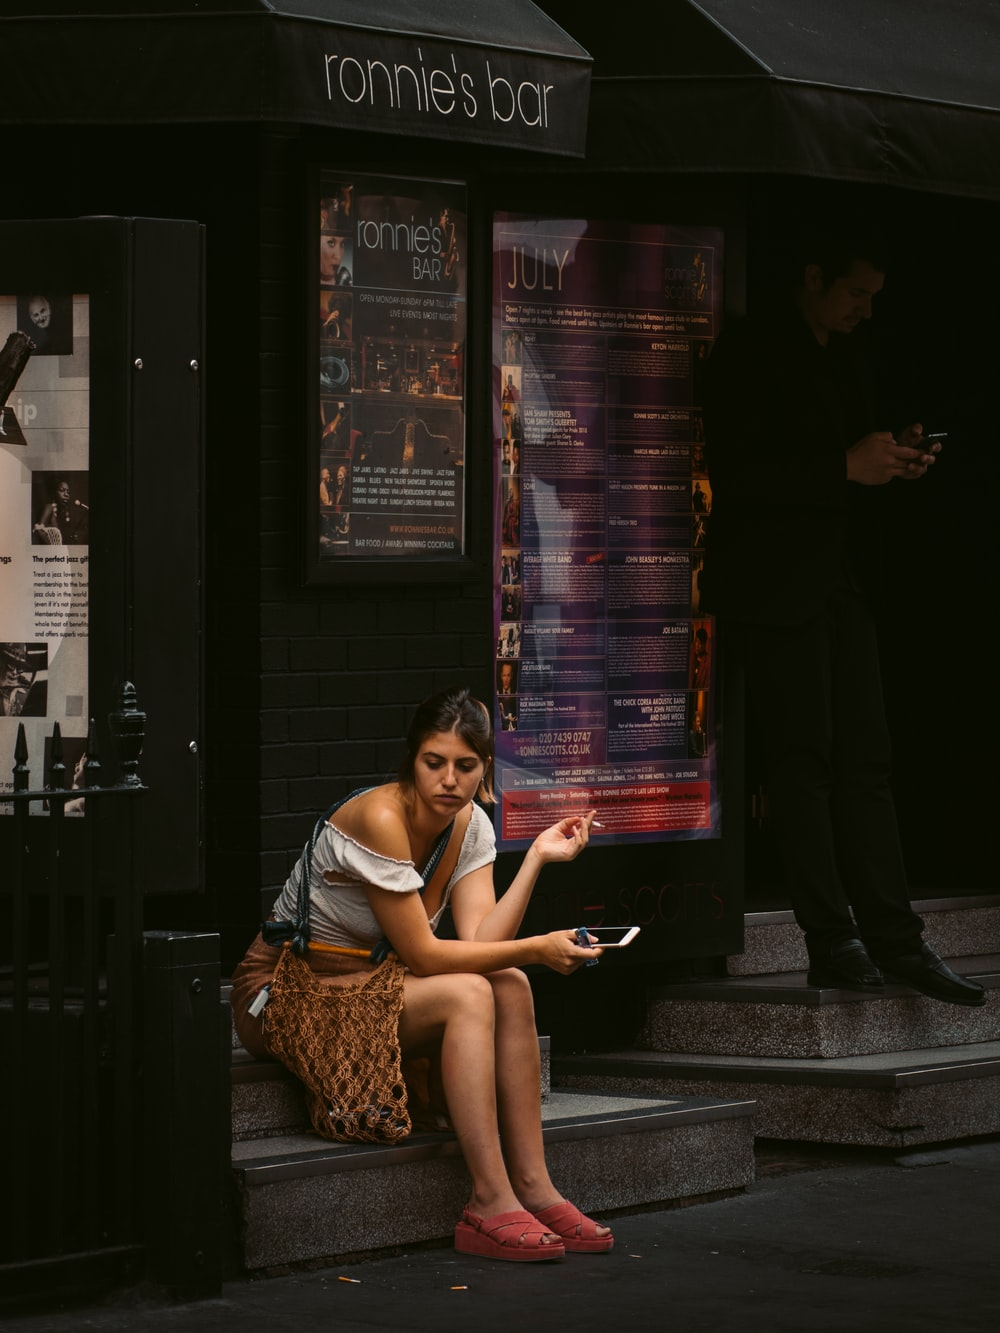 woman holding smartphone sitting on Ronnie's Bar store